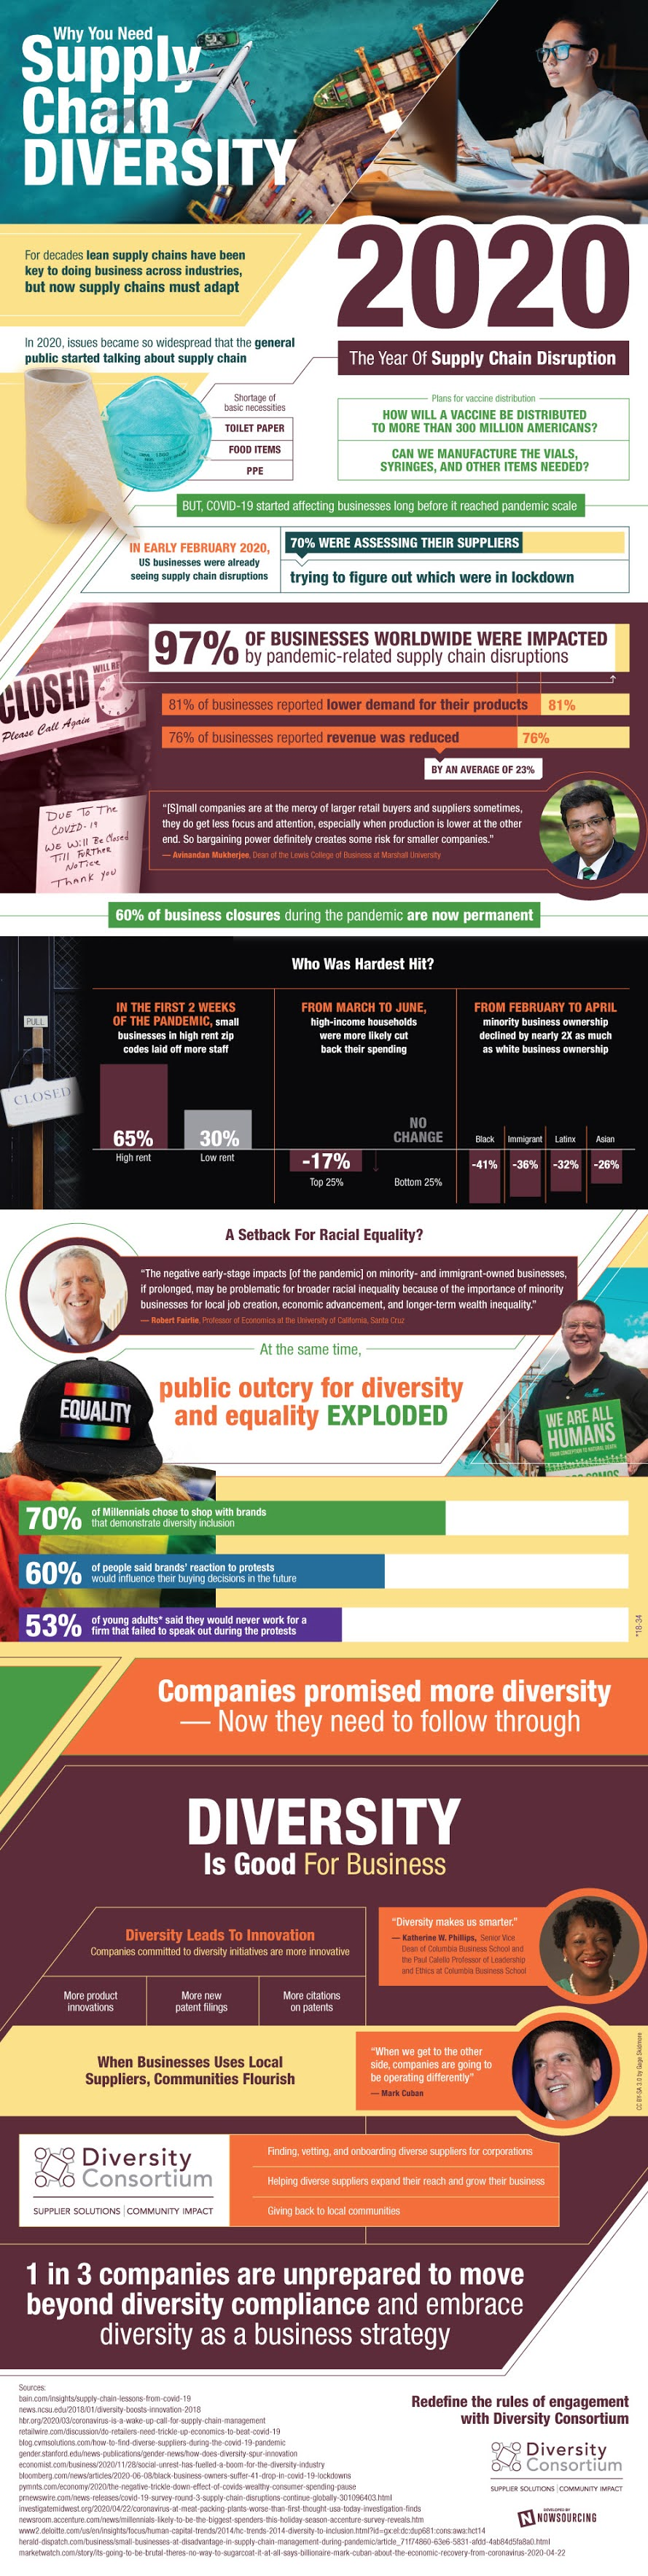 Why You Need Supply Chain Diversity #infographic #Business #Supply chain #infographics #Supplier Solutions #Infographic